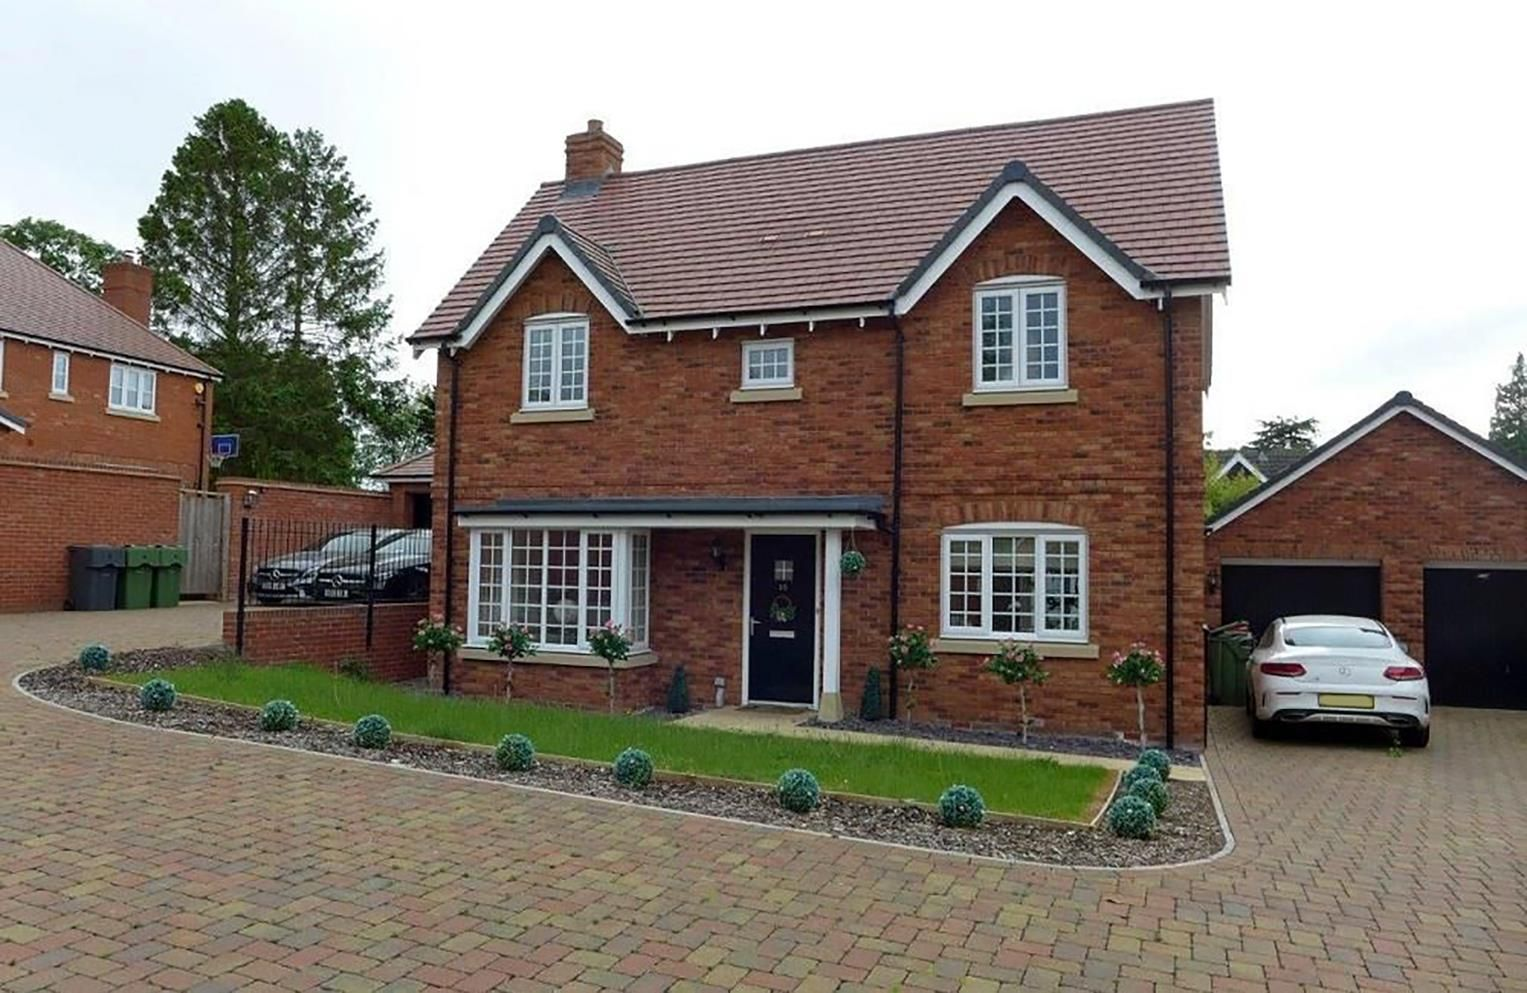 3 bed detached for sale in Hagley 16